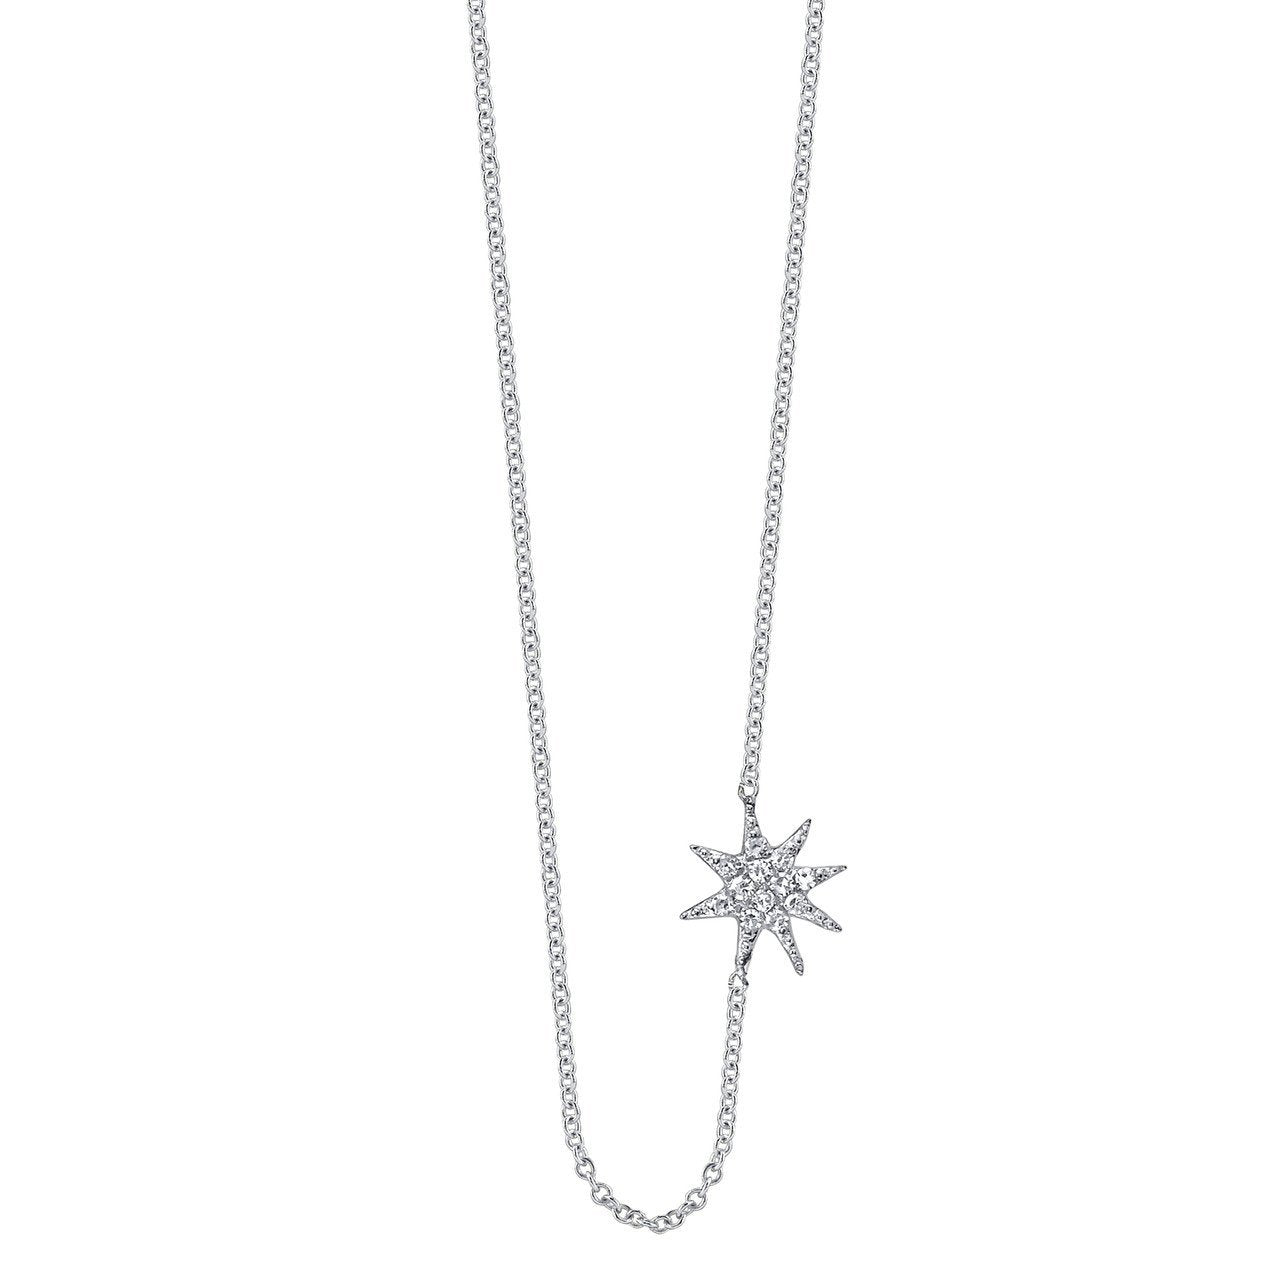 Single Star Necklace With White Pavé Diamonds - Gabriela Artigas